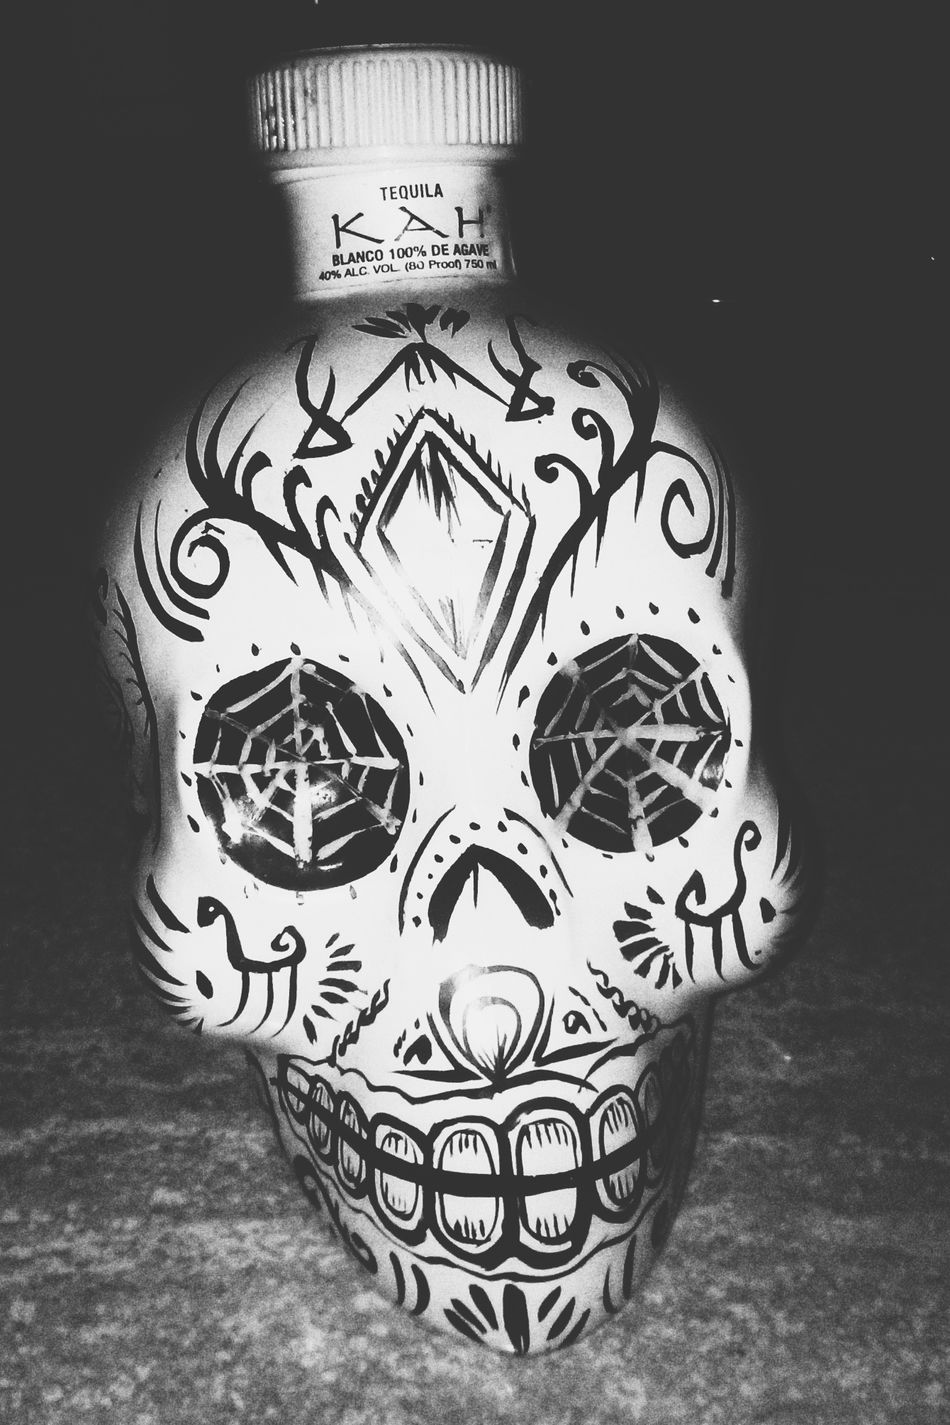 Yes, this is also Tequila Close-up Sugarskull Salud Bnw_collection Blancoynegro Blanco Y Negro Cheers ! Cheers Bnw Beverage Blackandwhite Photography Bnwphotography Beverages Black And White Blackandwhite Bnw Photography Blackandwhitephotography Tequila! Tequila Time Bnw_friday_eyeemchallenge